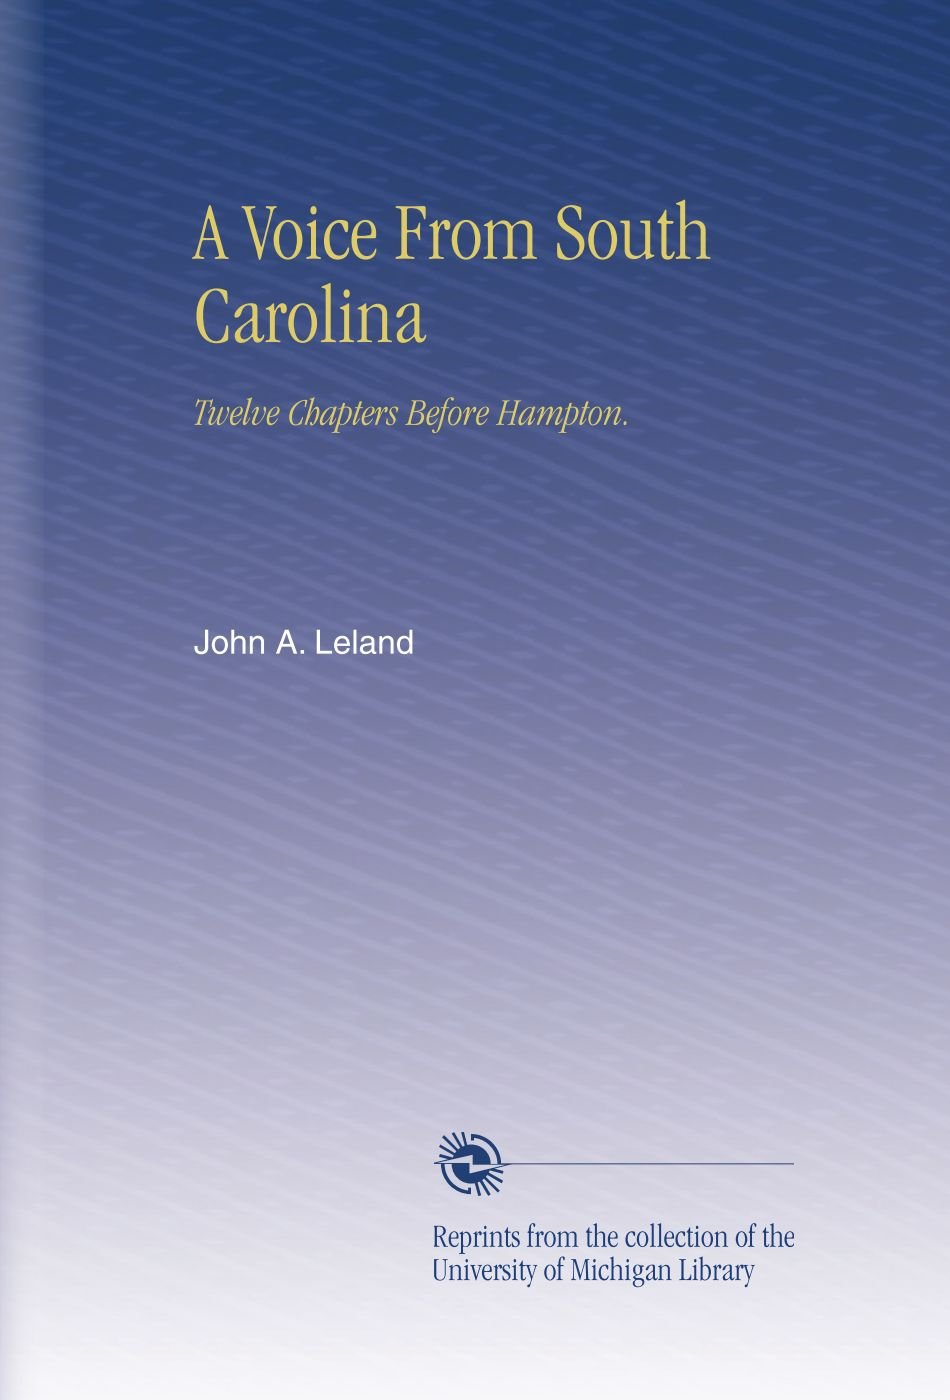 Download A Voice From South Carolina: Twelve Chapters Before Hampton. PDF